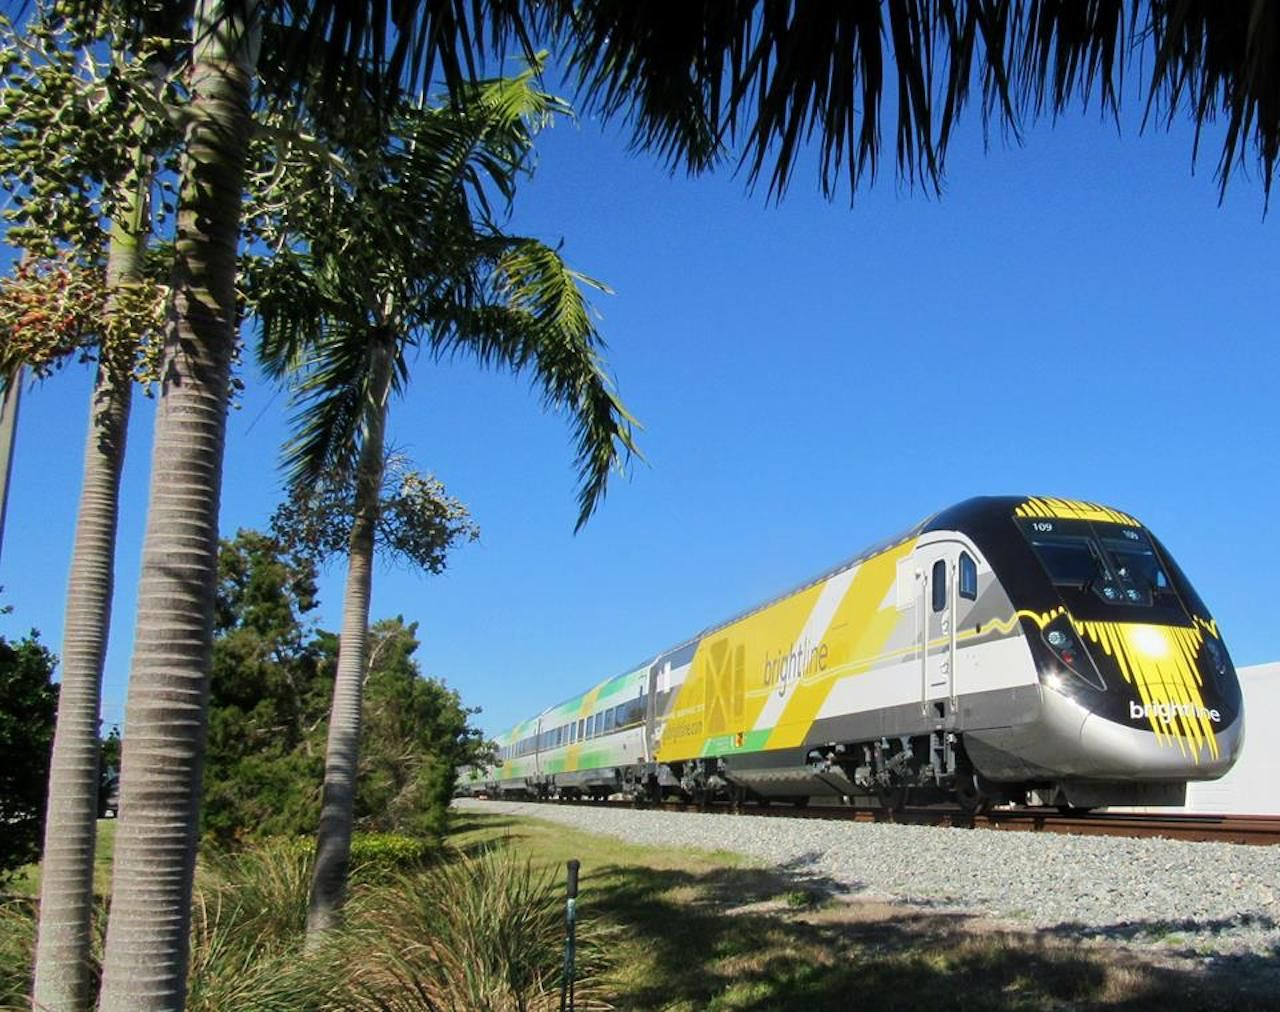 GoBrightline train